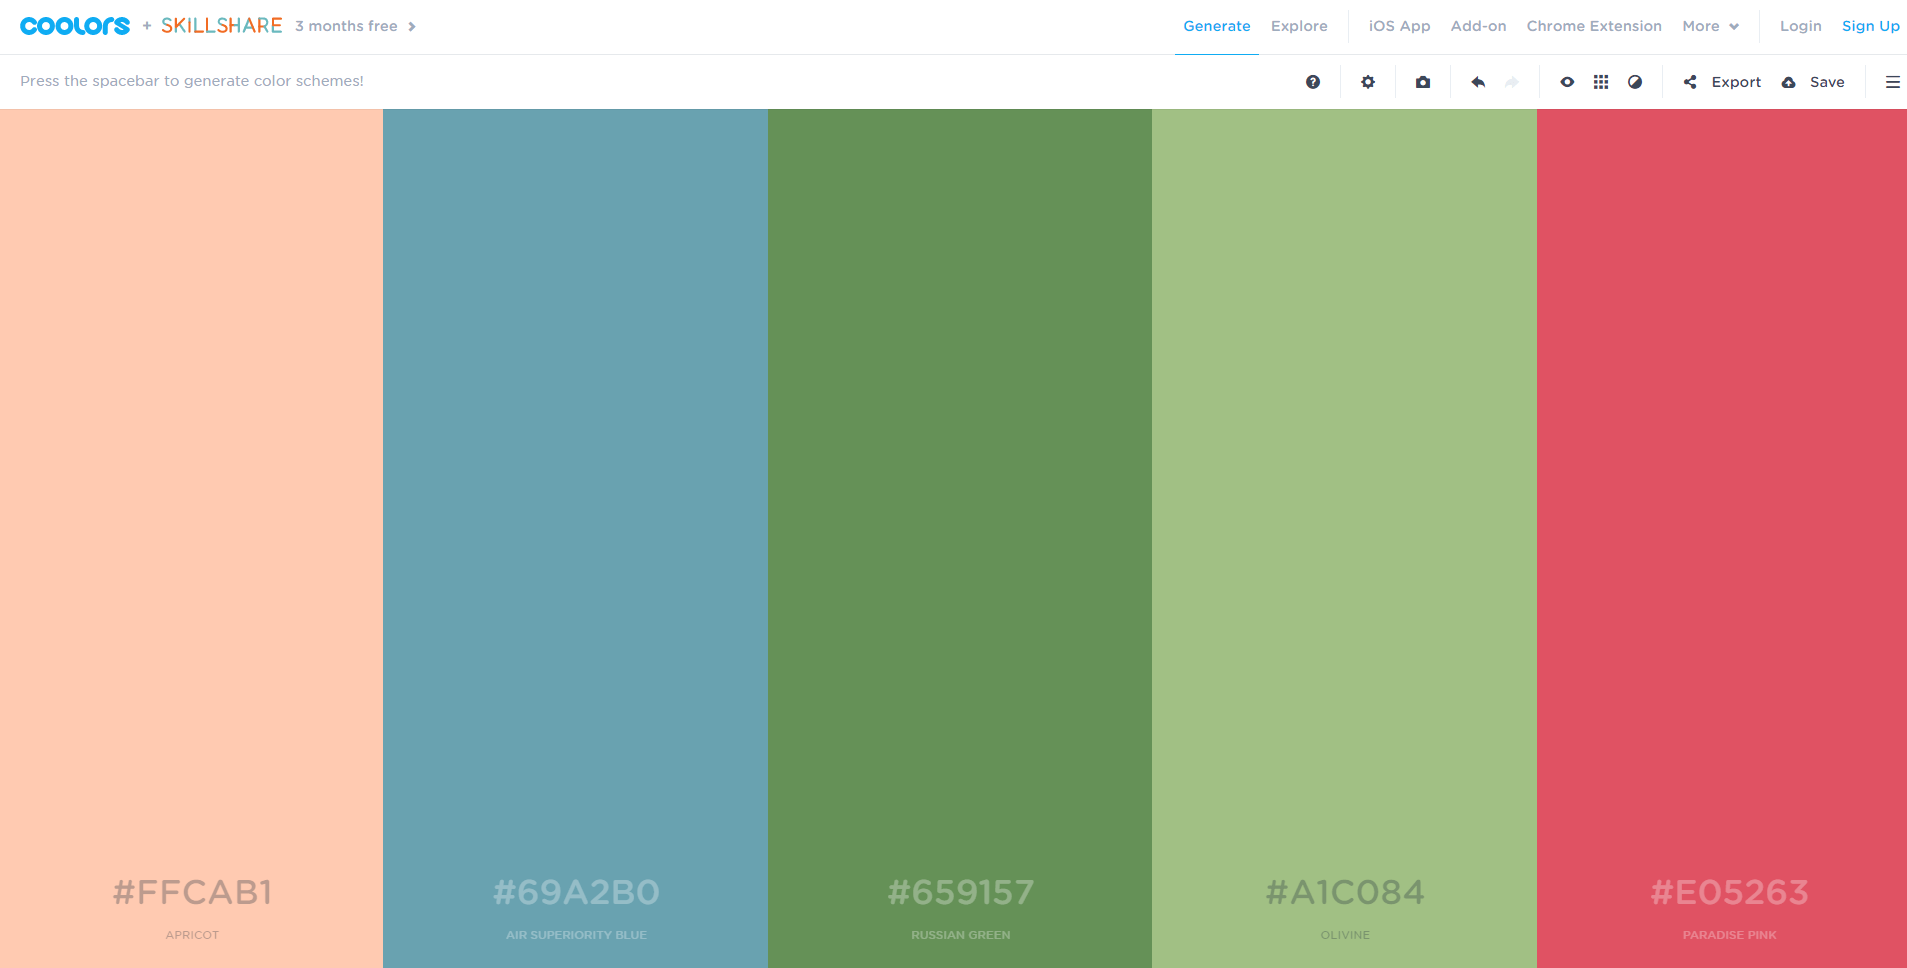 While There Are Hundreds Of Existing Color Schemes That The Website Suggests